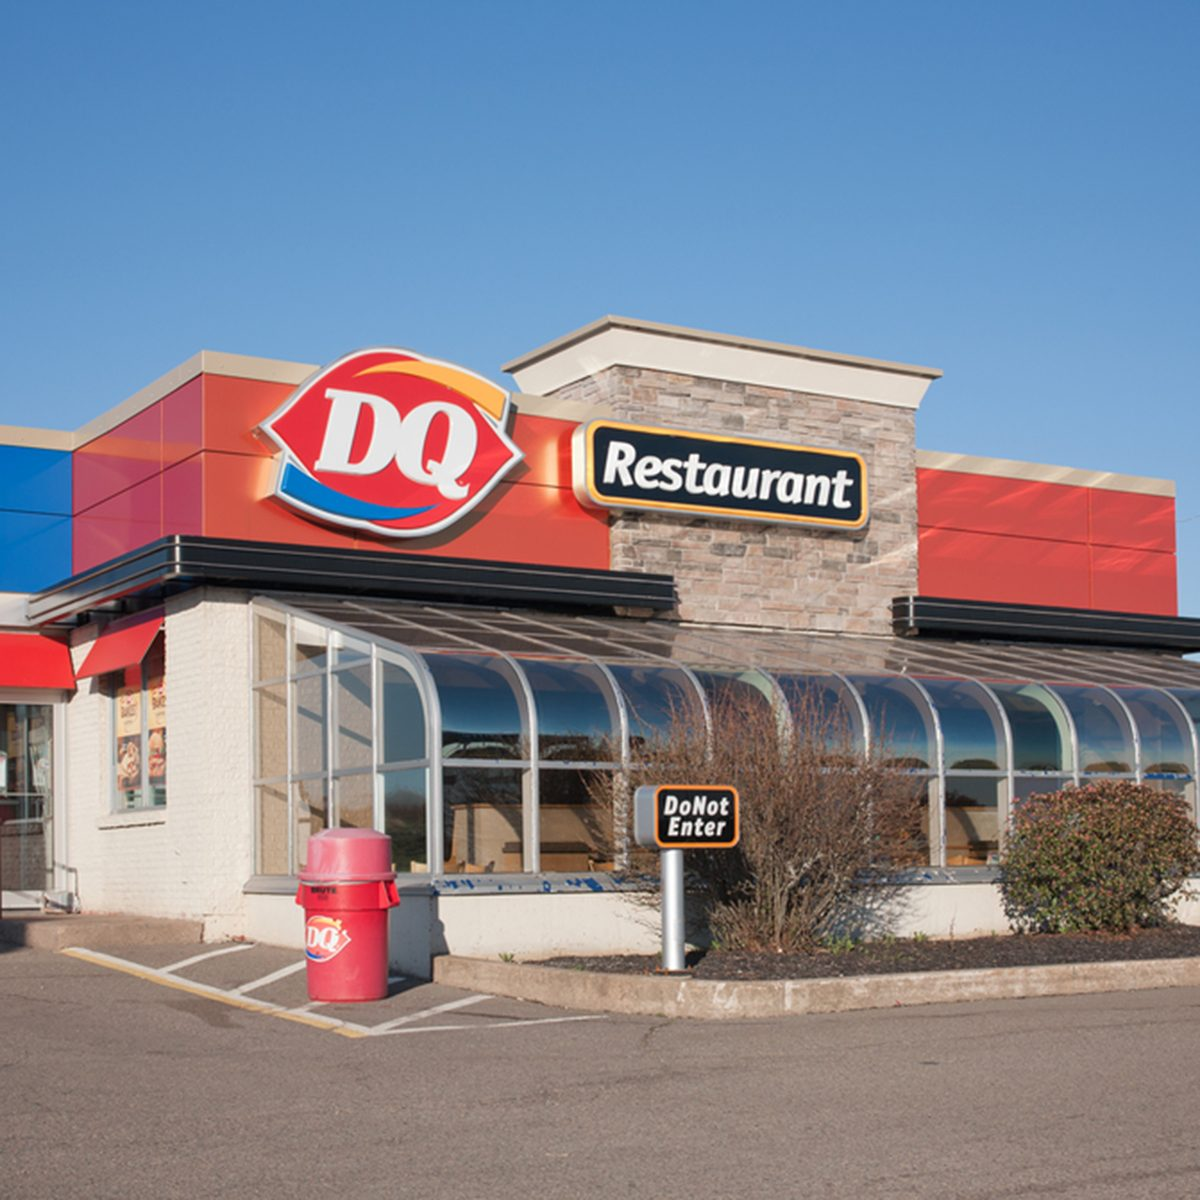 Dairy Queen, or DQ, is a fast food restaurant chain owned by International Dairy Queen, Inc.